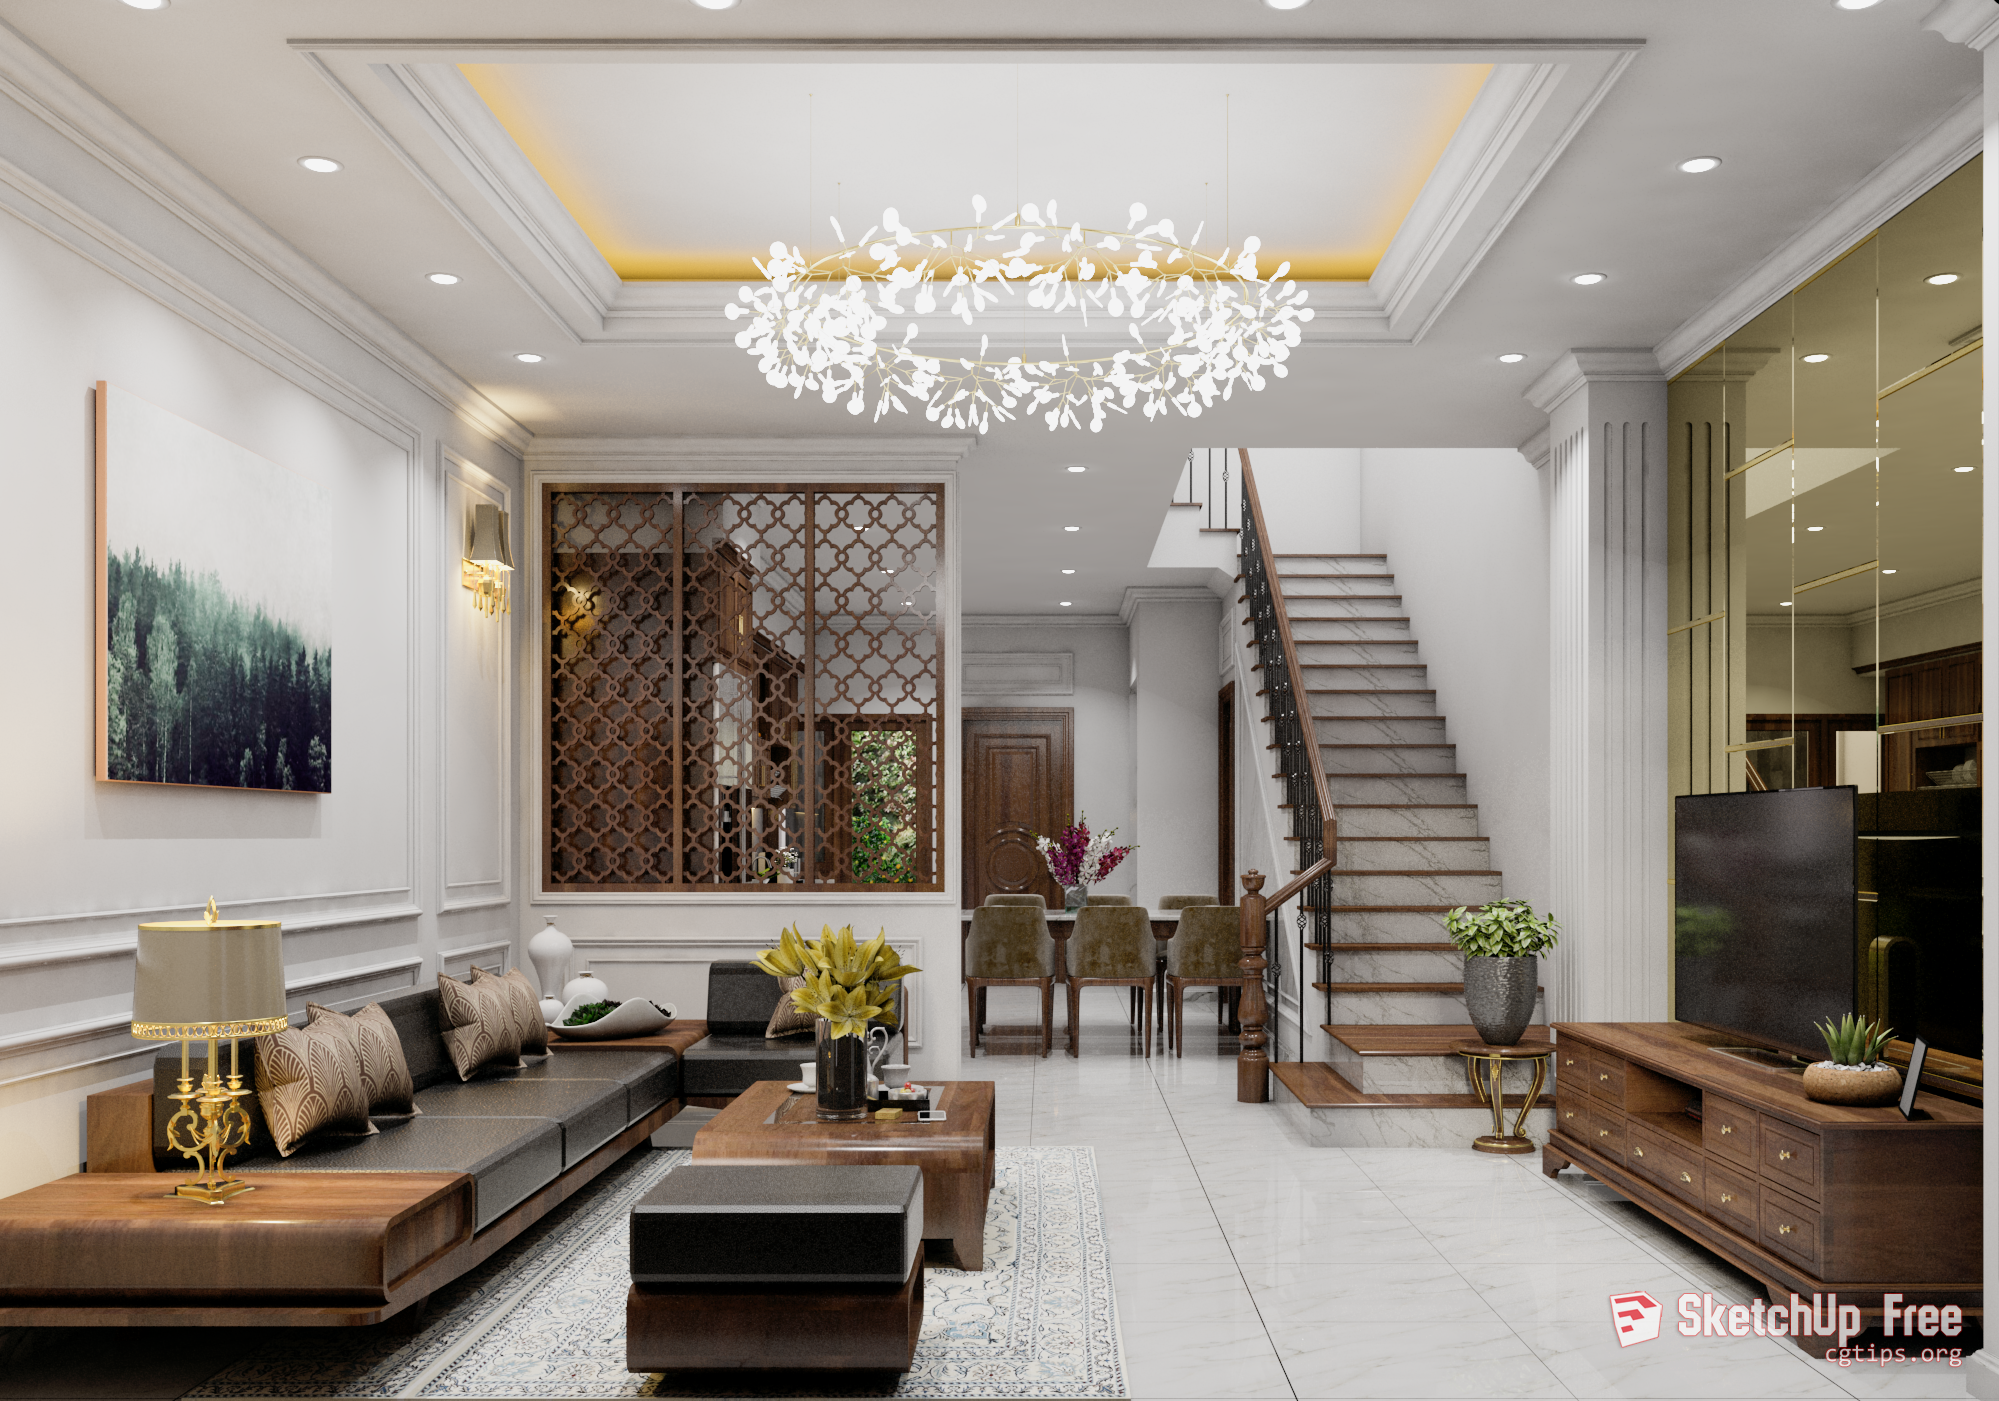 2075 Interior Livingroom Scene Sketchup Model Free Download With